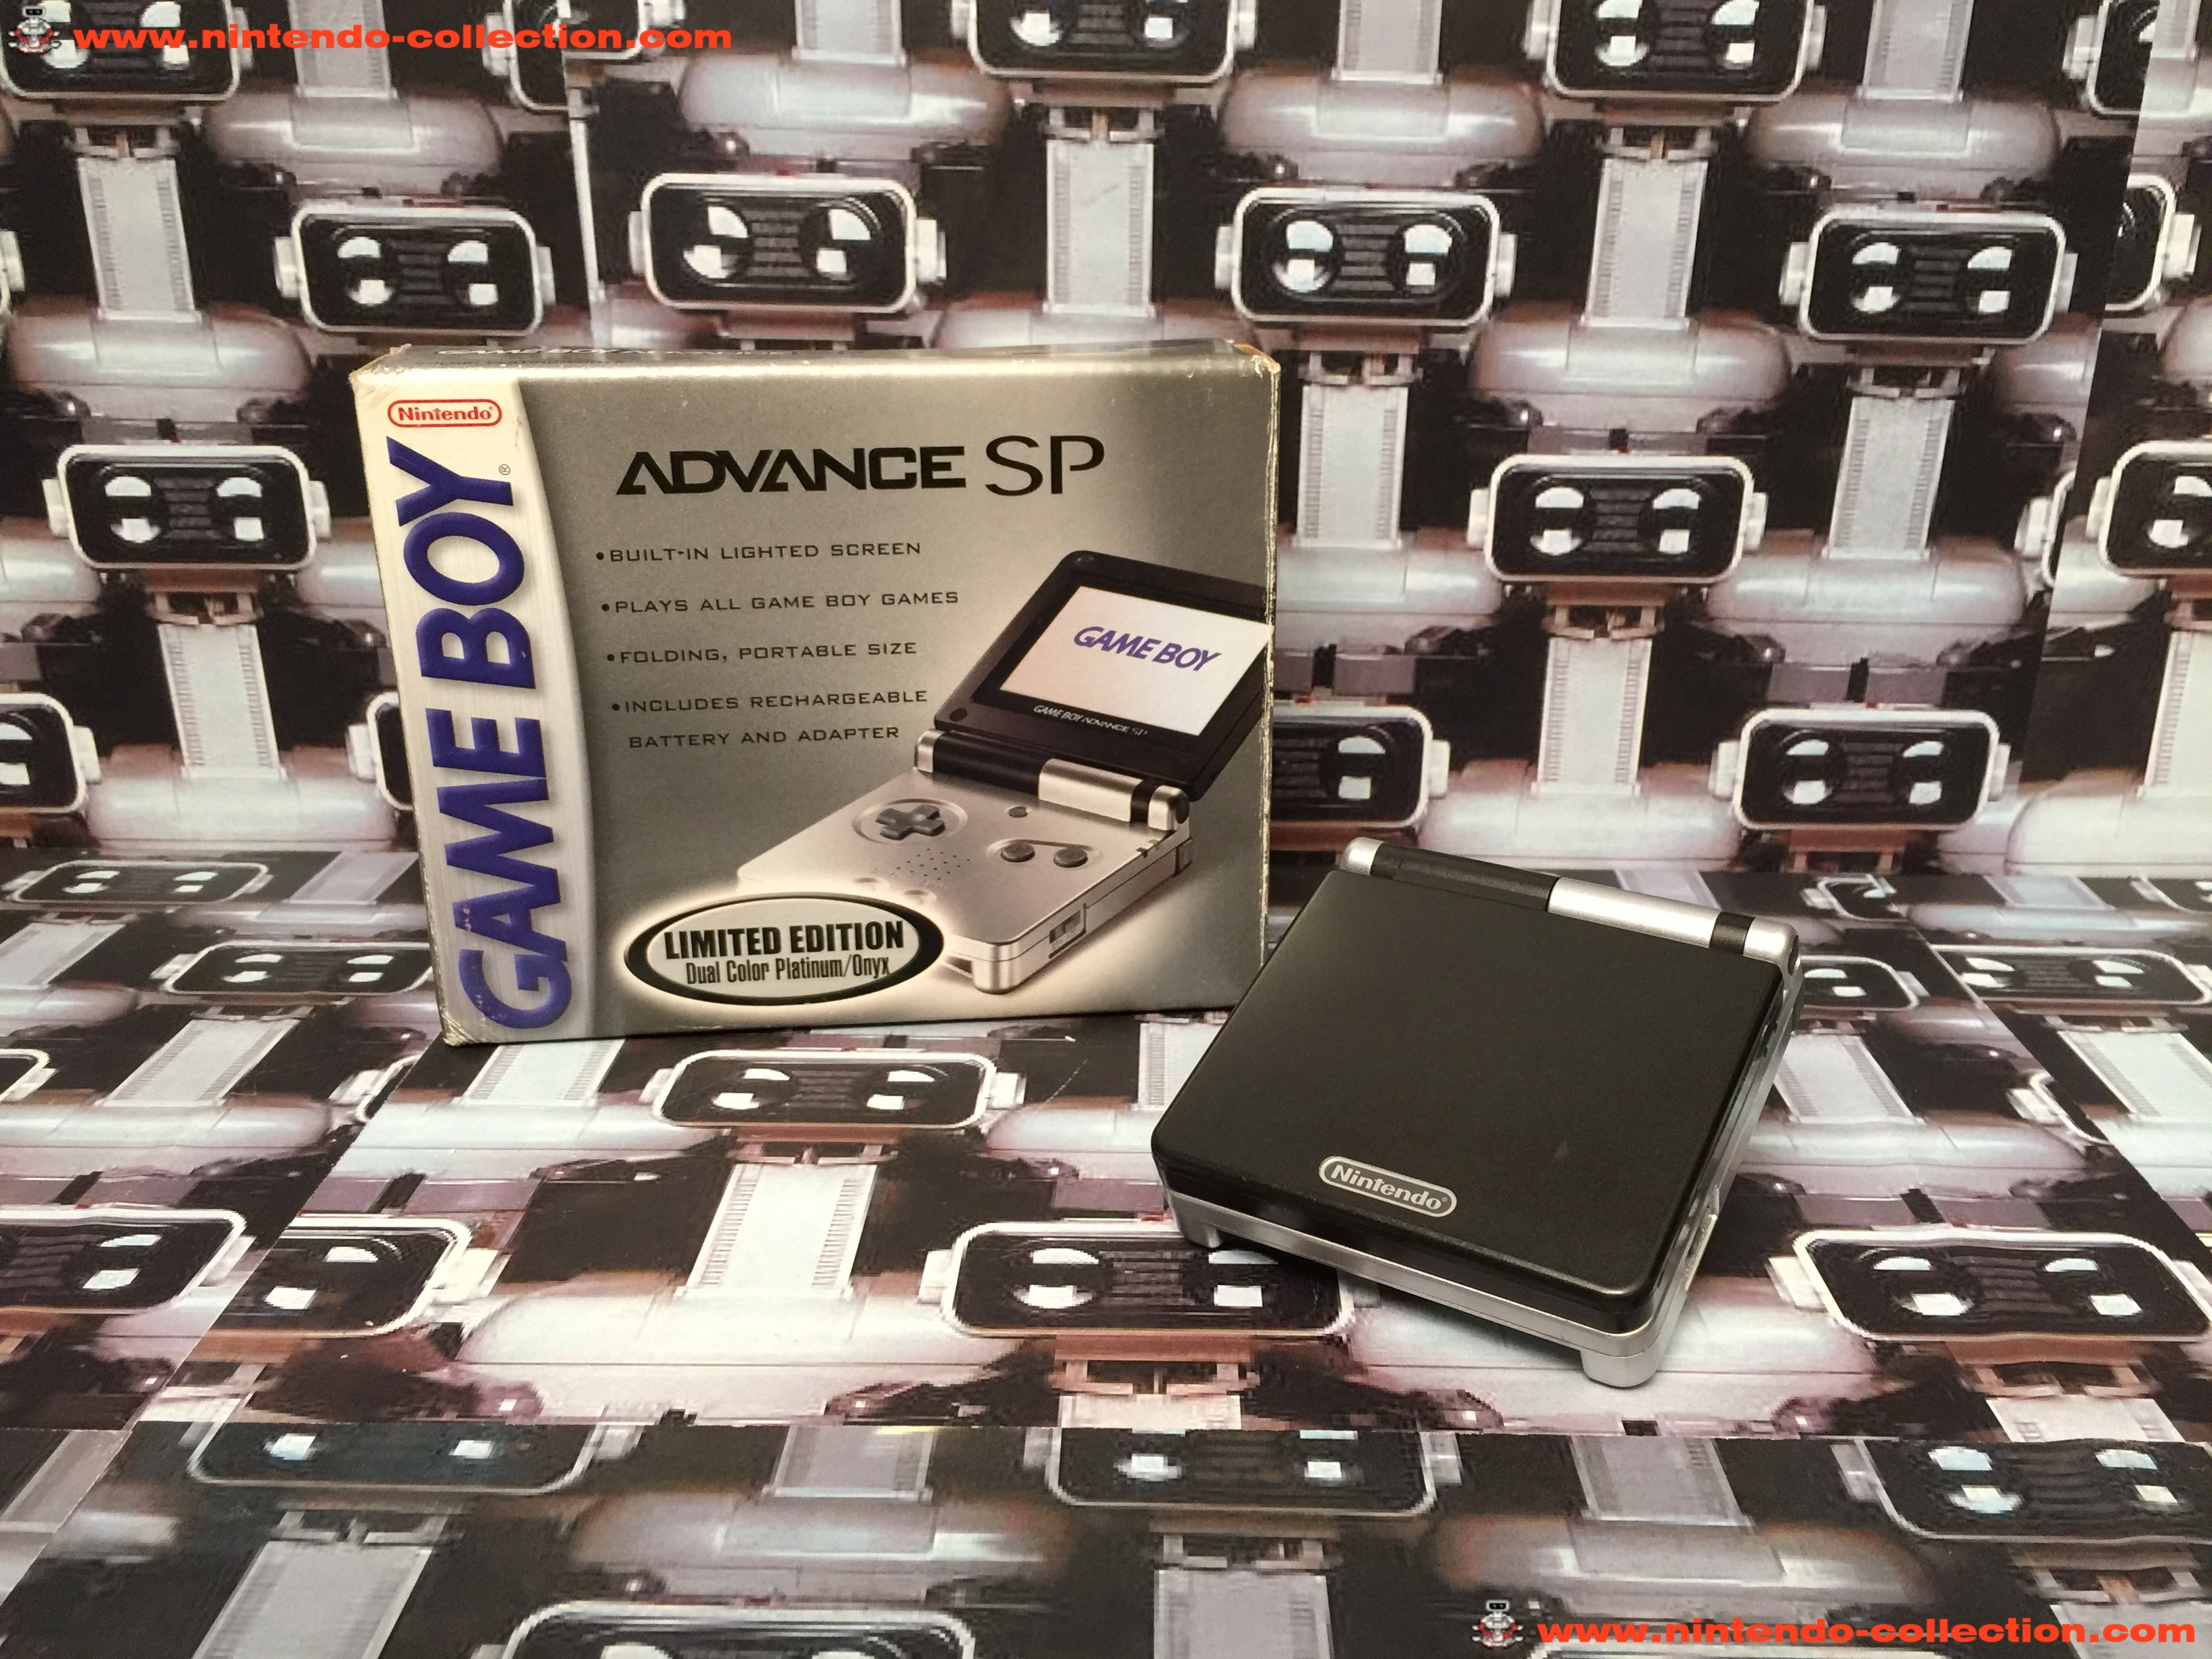 www.nintendo-collection.com - Gameboy Advance GBA SP Black Onyx edition US - 01